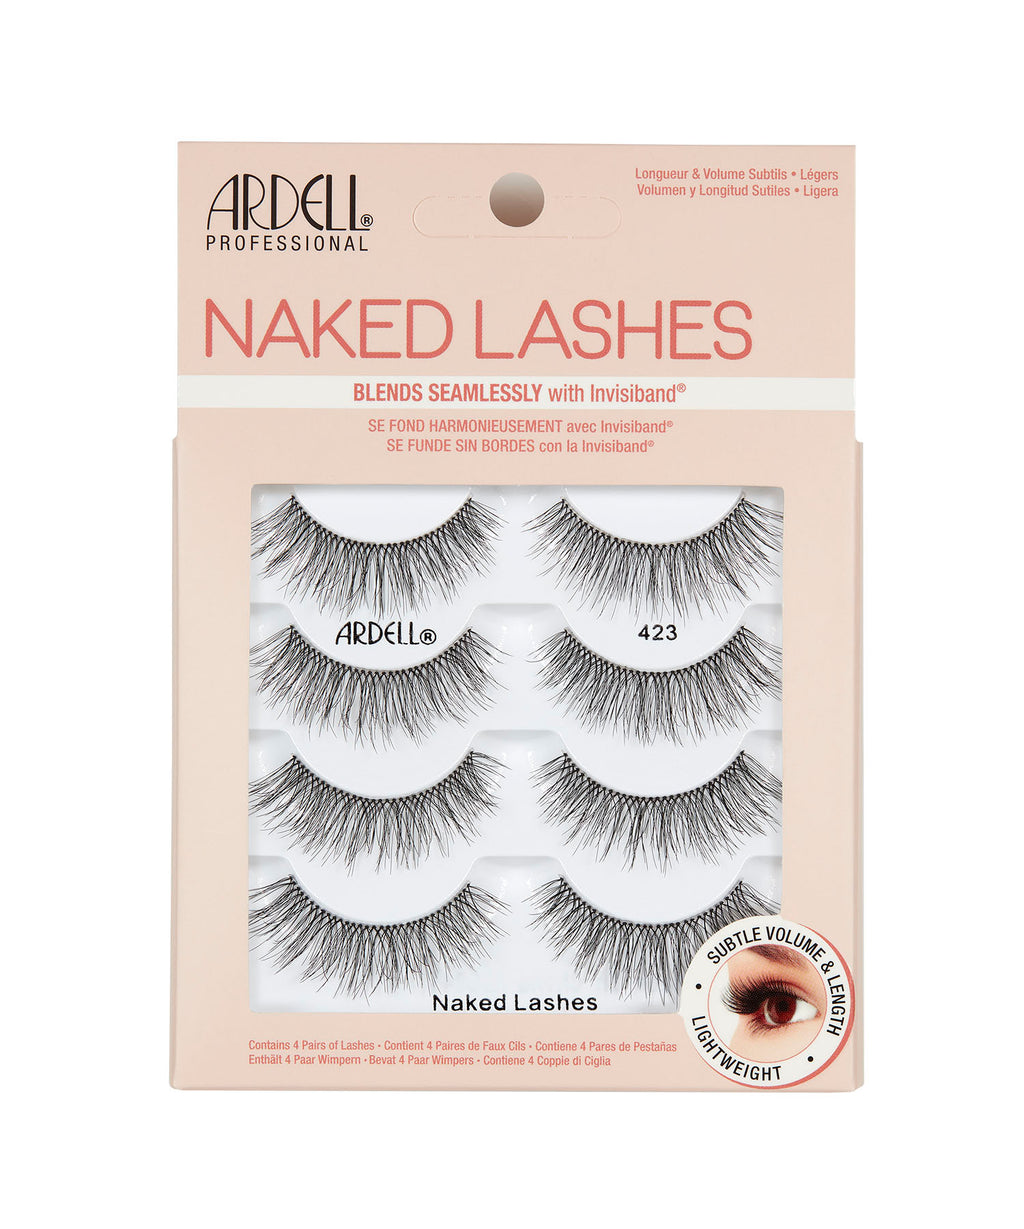 ARDELL Naked Lashes Multipack | HODIVA SHOP